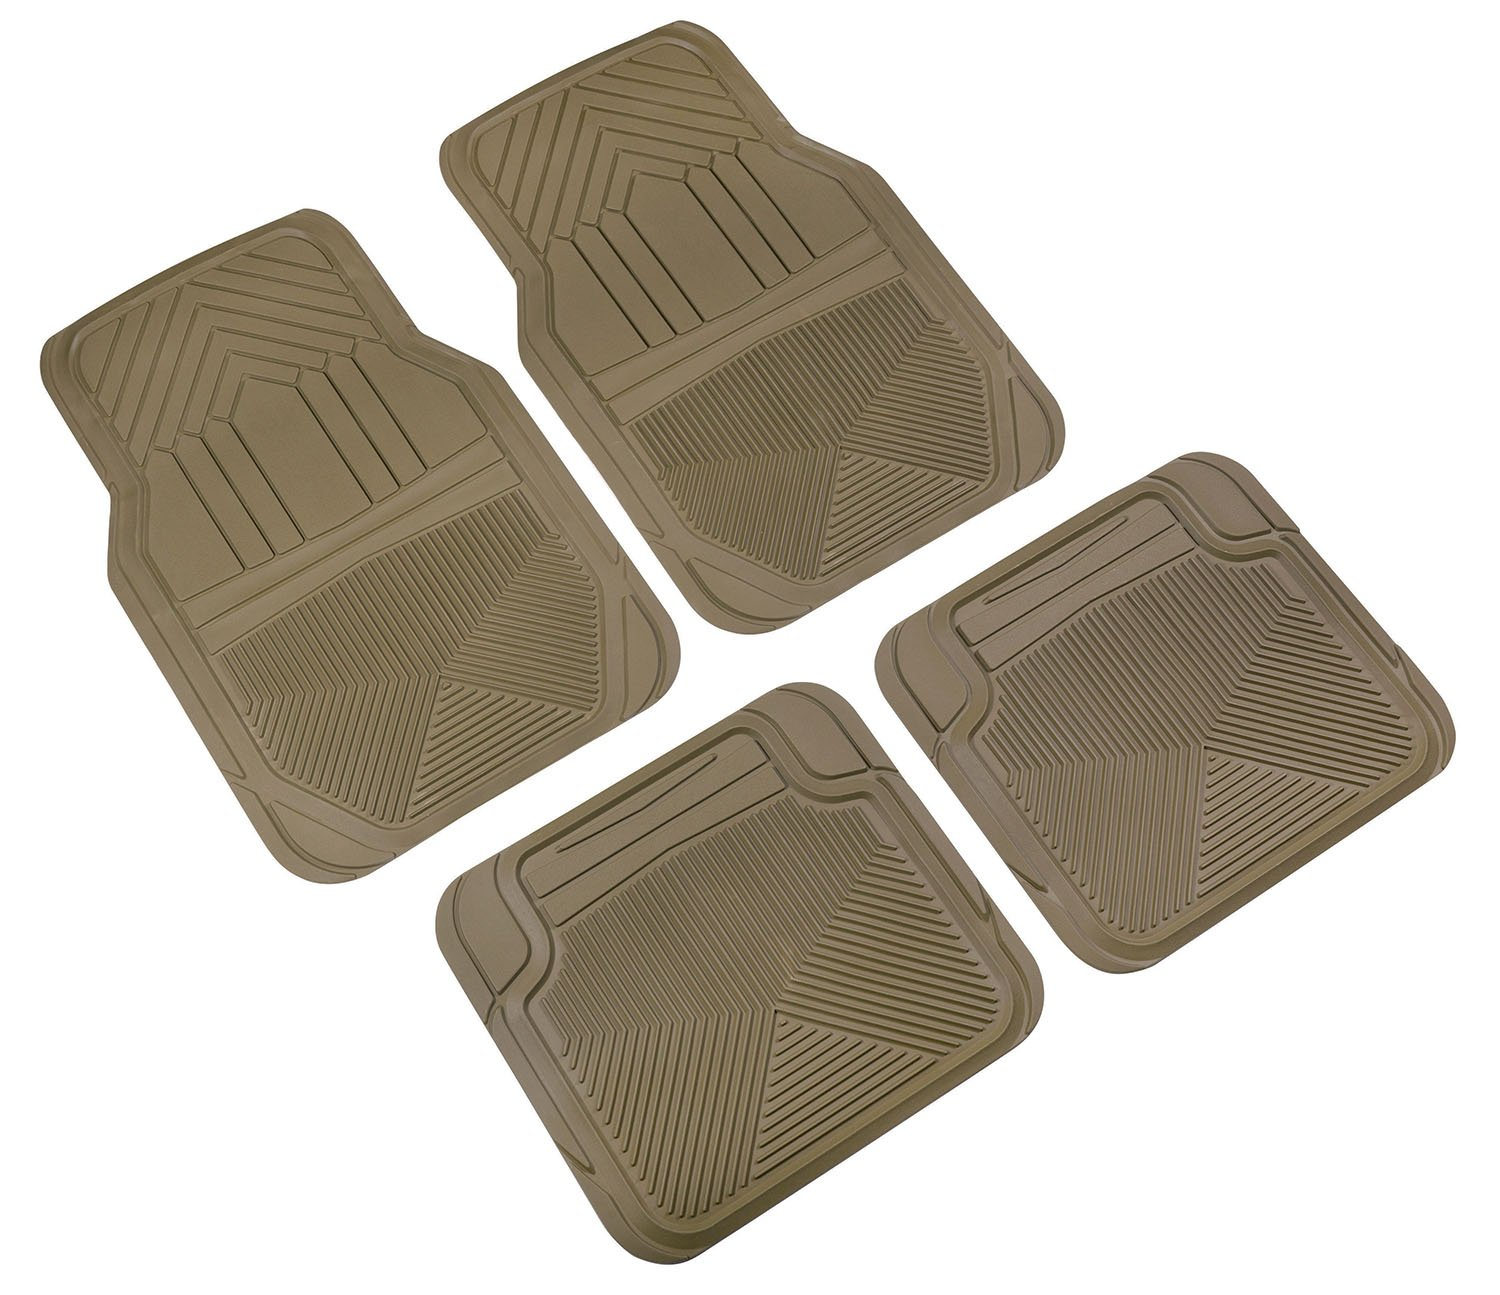 Highland 4447800 Weather Fortress Tan Premium Synthetic All Weather Floor Mat 4 Piece